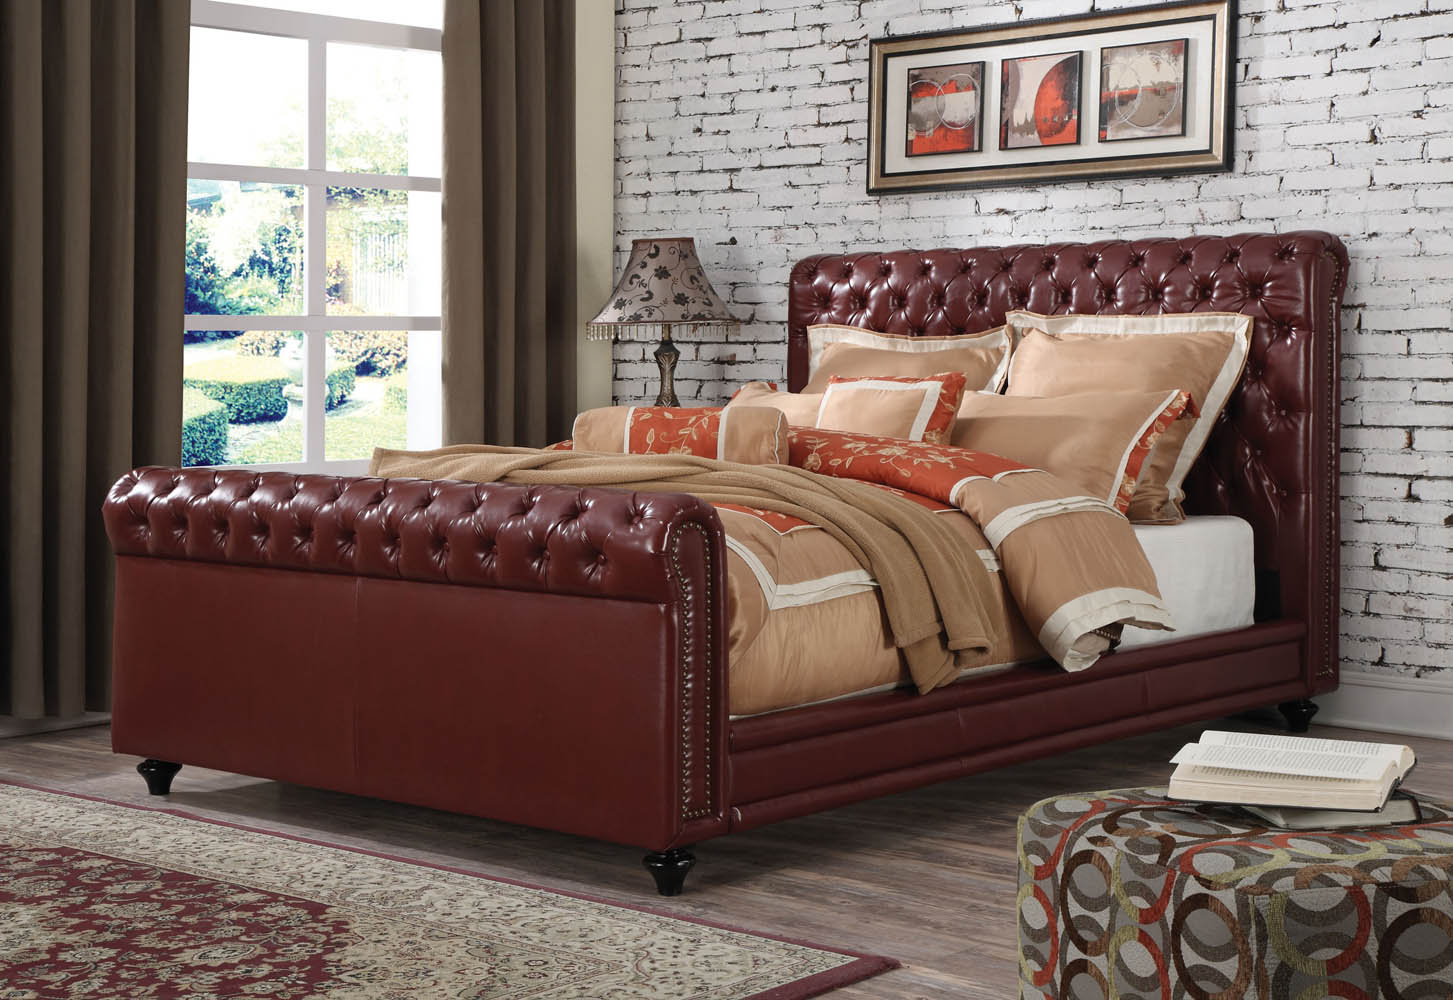 Leather Bed Burgundy Leather Upholstered Eastern King Bed Frame